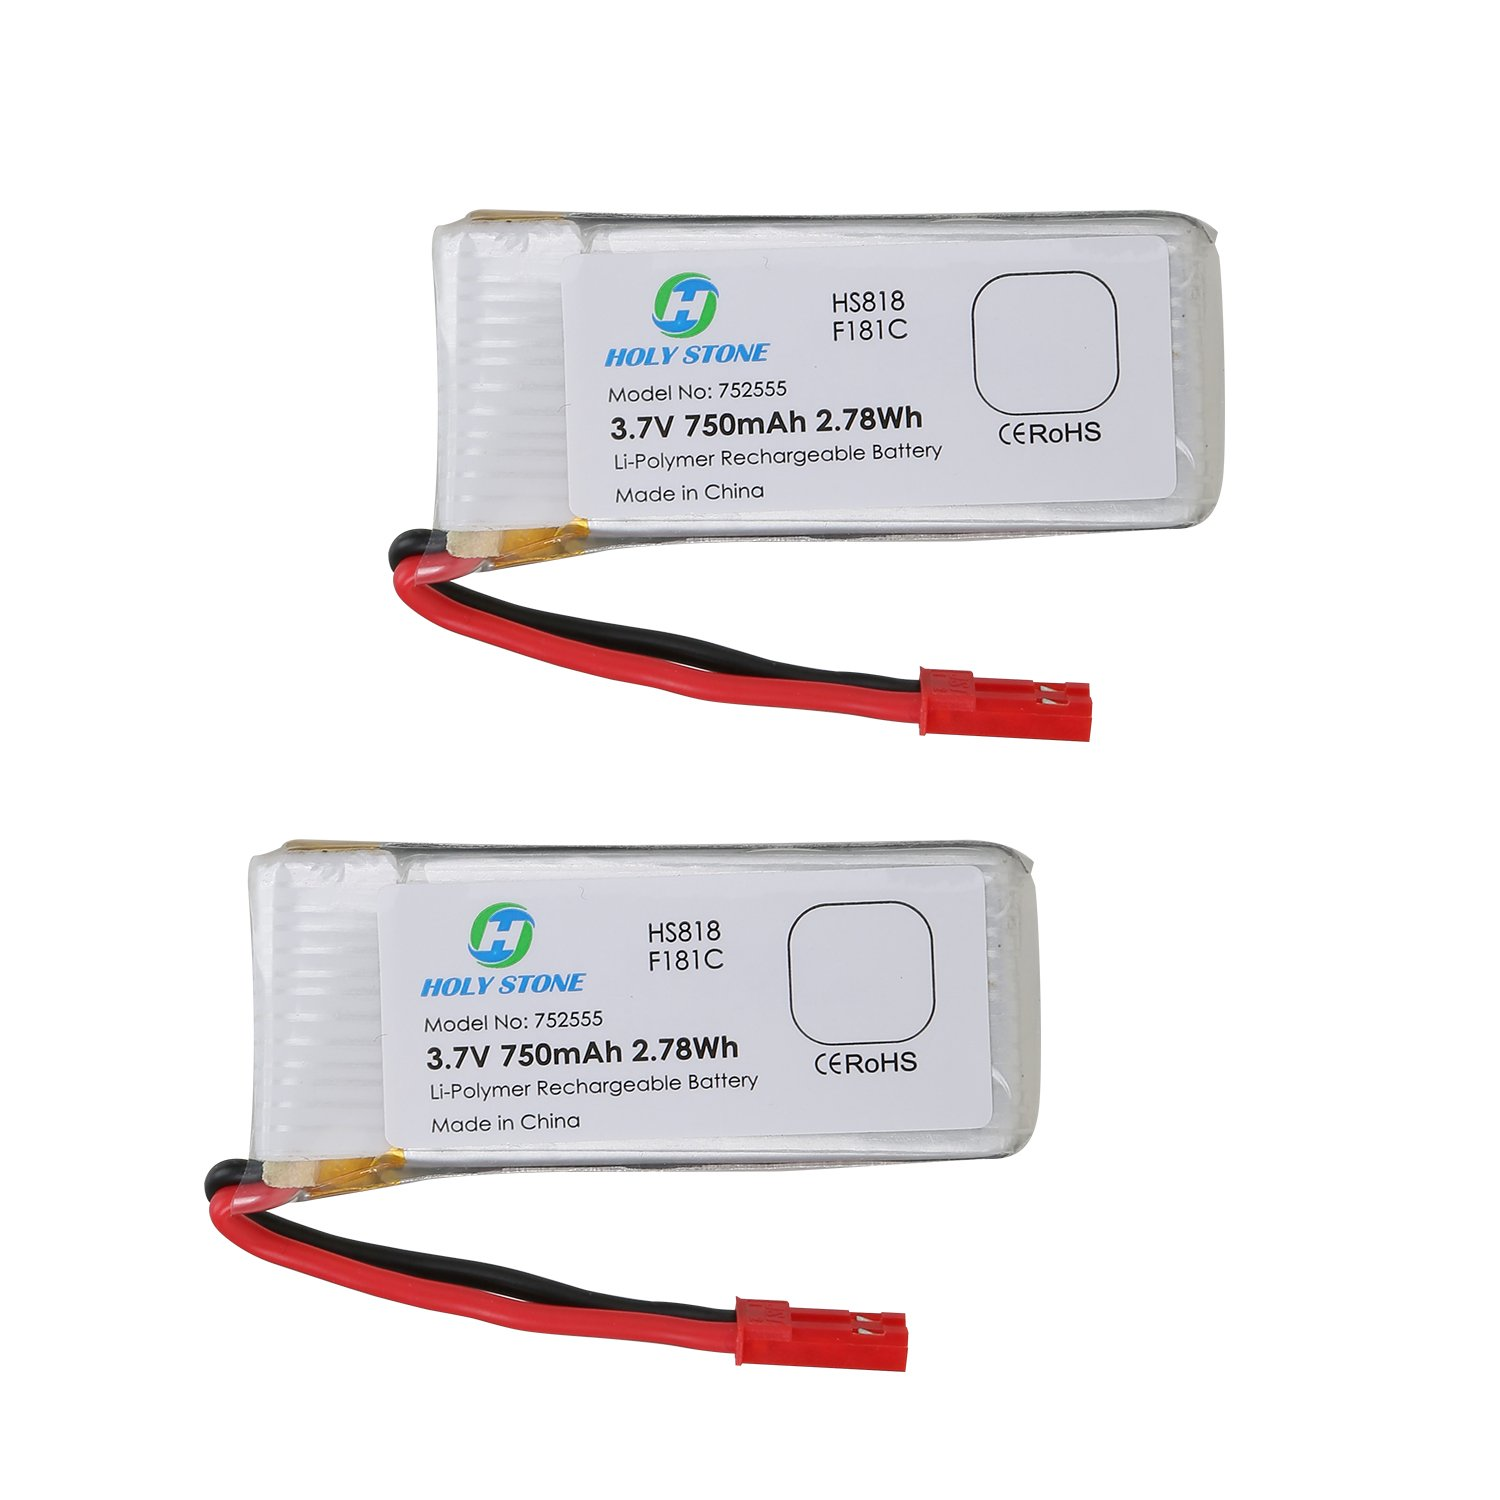 Holy Stone 2 X 37v 750mah Lipo Battery For Rc Circuithelp Lithium Ion 2000mah Quadcopter F181 Toys Games